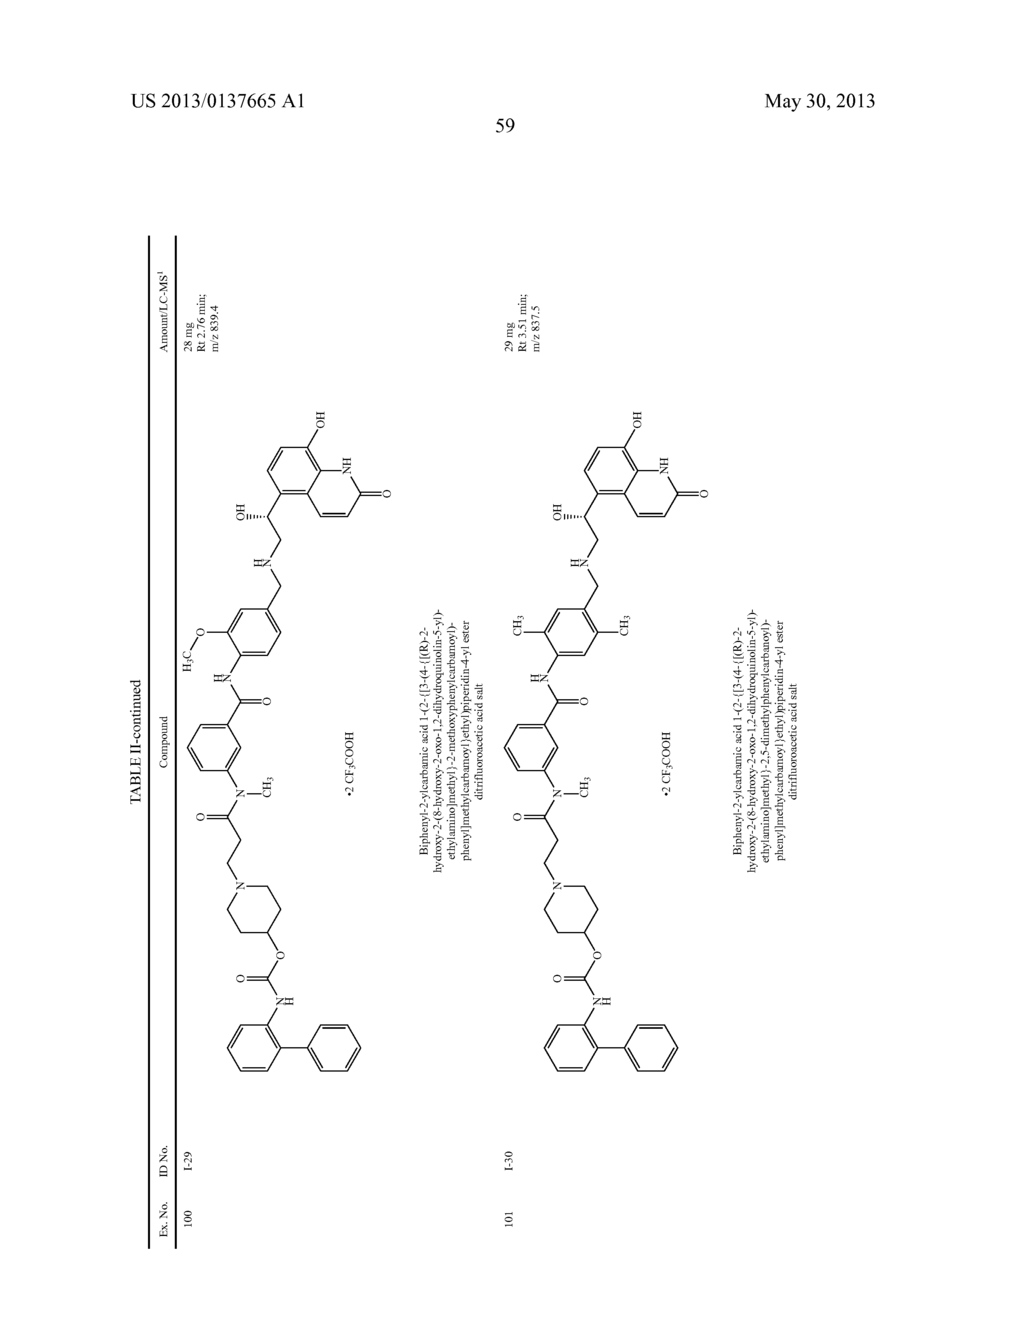 DIAMIDE COMPOUNDS HAVING MUSCARINIC RECEPTOR ANTAGONIST AND BETA2     ADRENERGIC RECEPTOR AGONIST ACTIVITY - diagram, schematic, and image 60